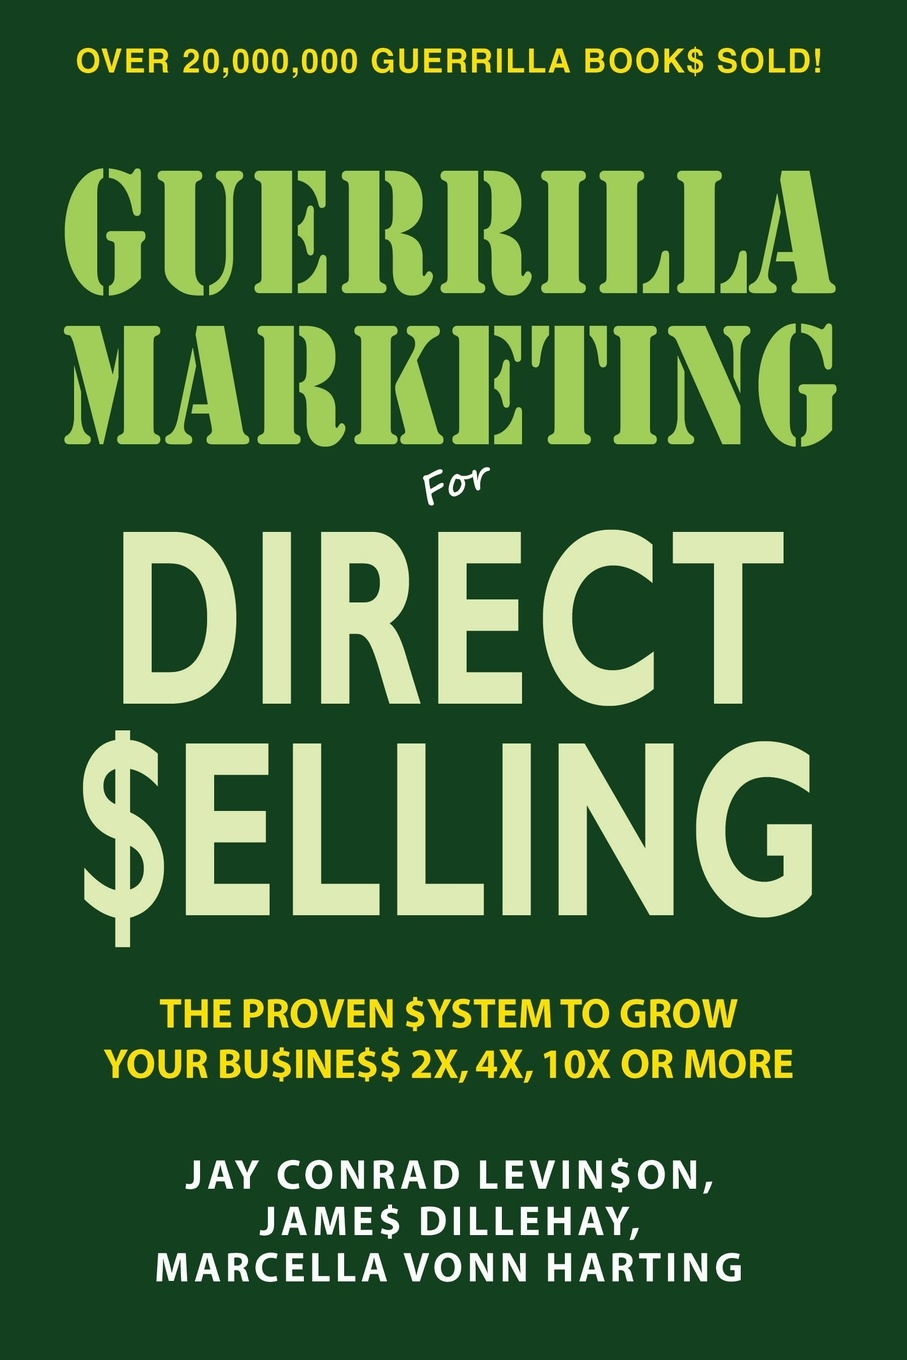 Фото - Jay Conrad Levinson, James Dillehay, Marcella Vonn Harting Guerrilla Marketing for Direct Selling. The Proven System to Grow Your Business 2X, 4X, 10X or More pieter k de villiers barefoot business 3 key systems to attract more leads win more sales and delight more customers without your business killing you